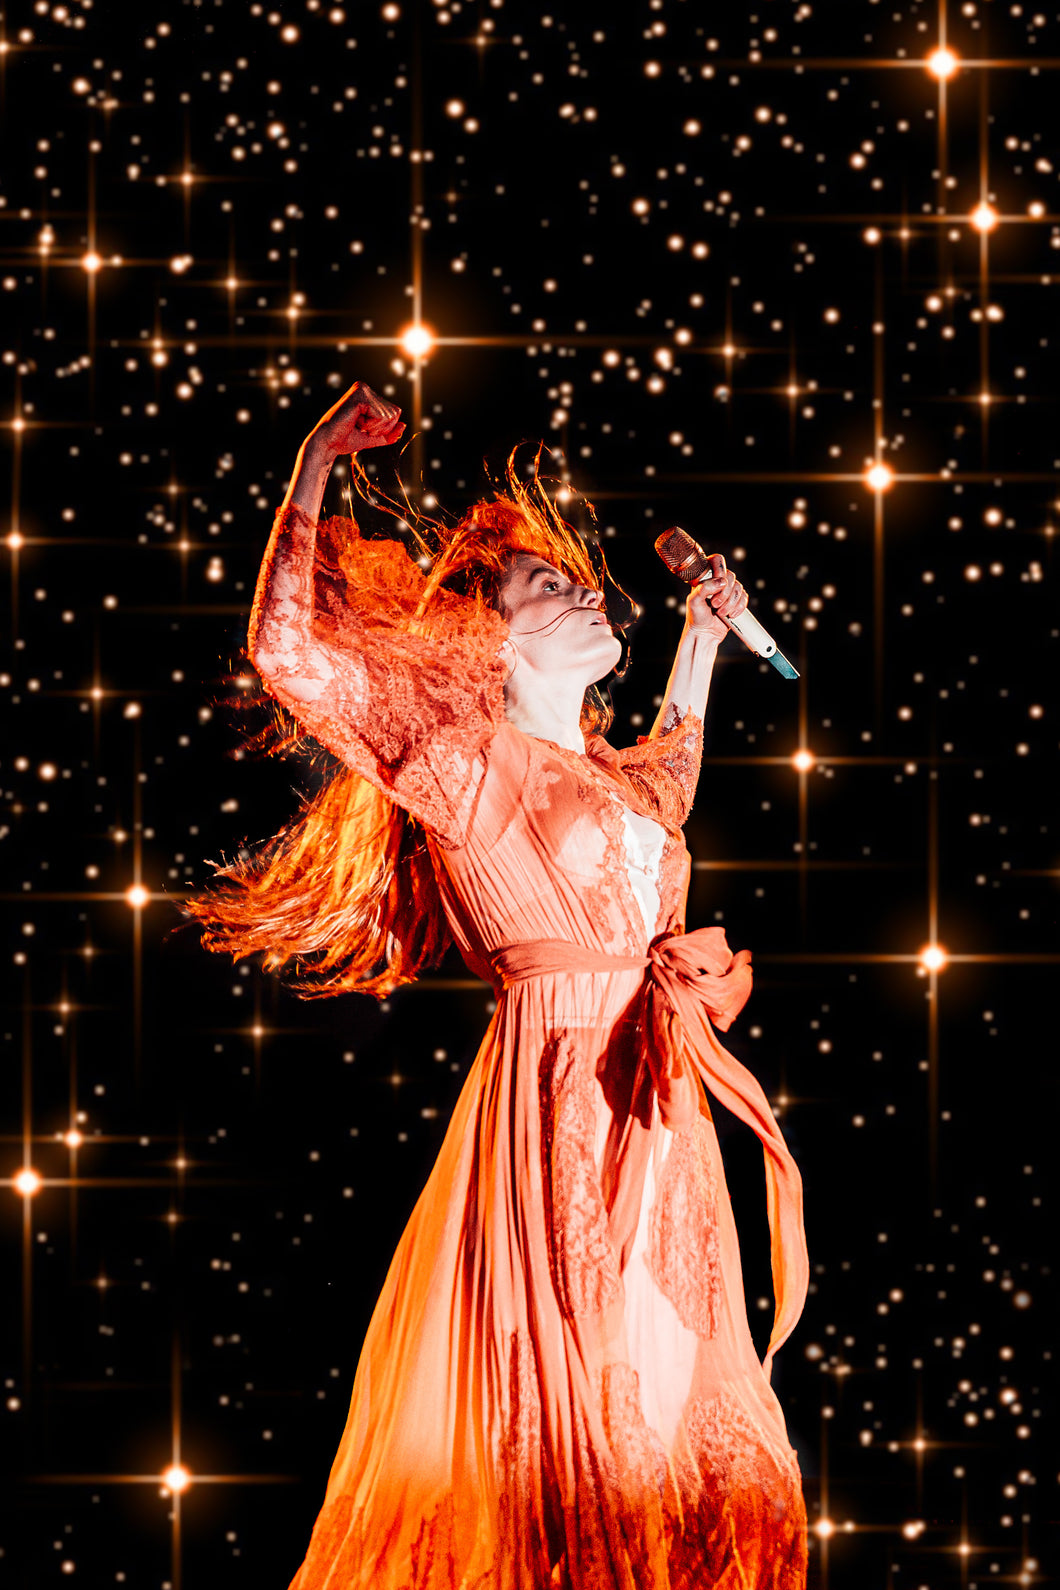 Florence and the Machine by Ruby Boland